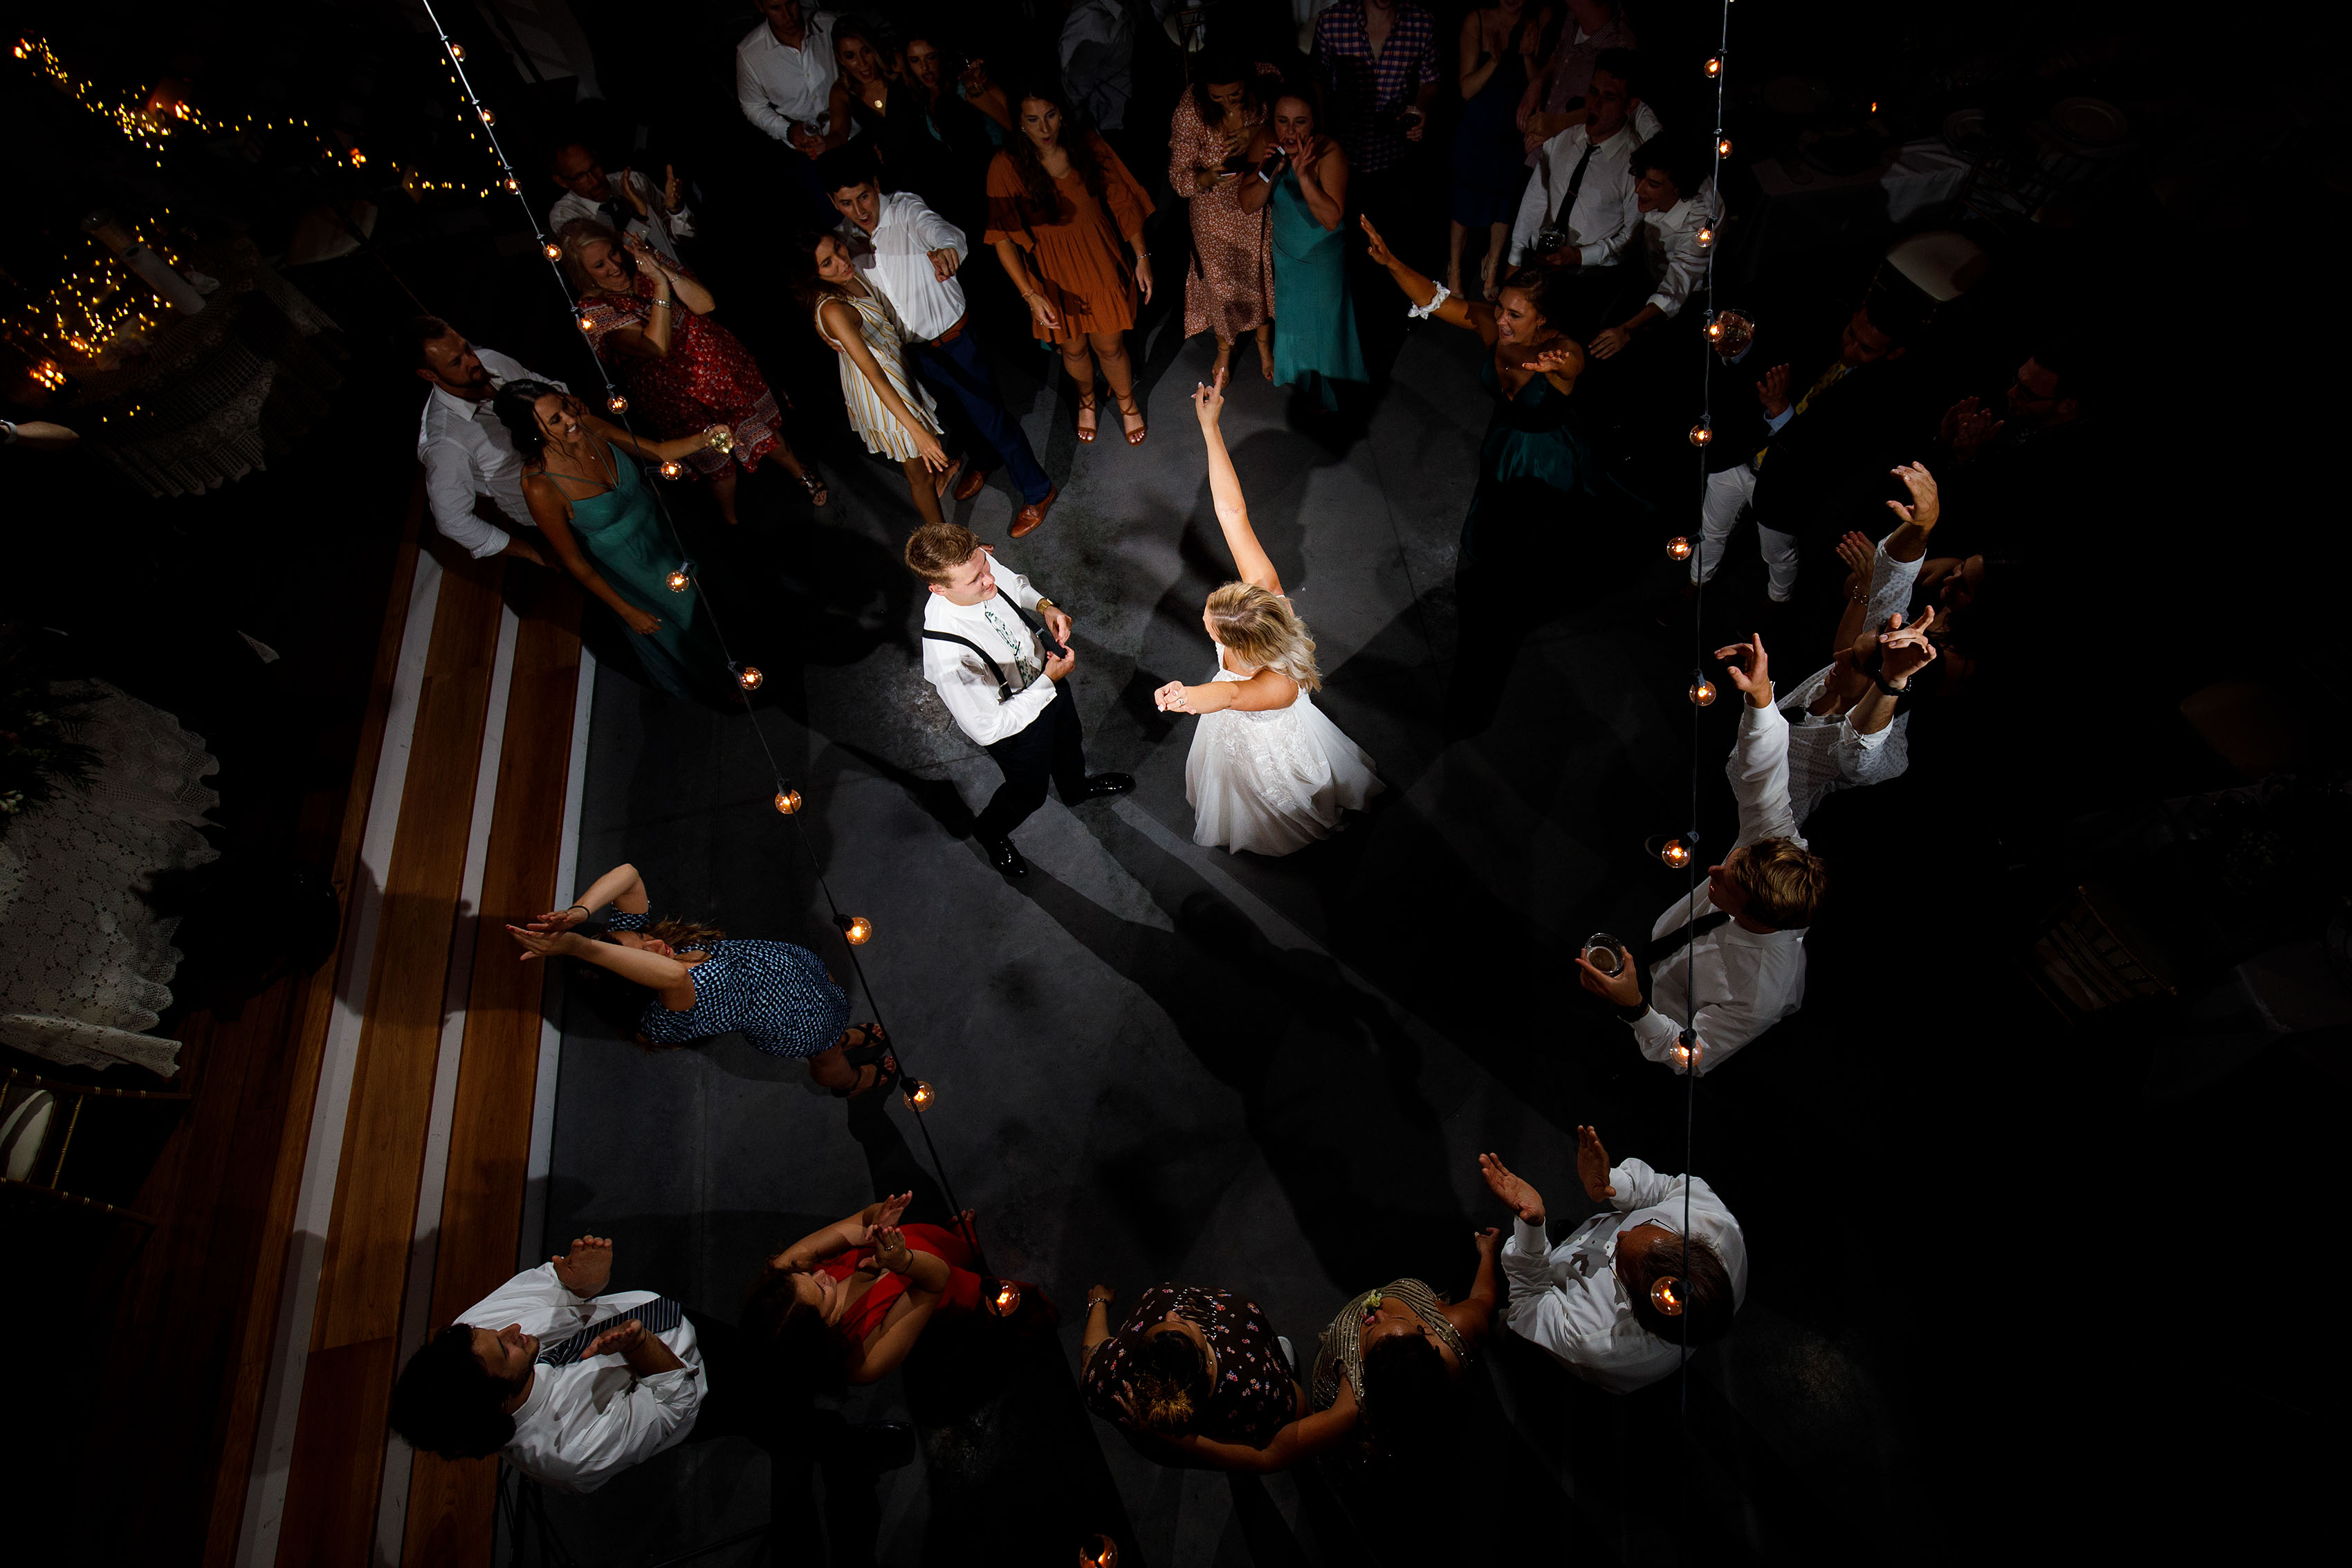 Guests dance around the bride and groom during a wedding at Emerson Fields in Excello, Missouri